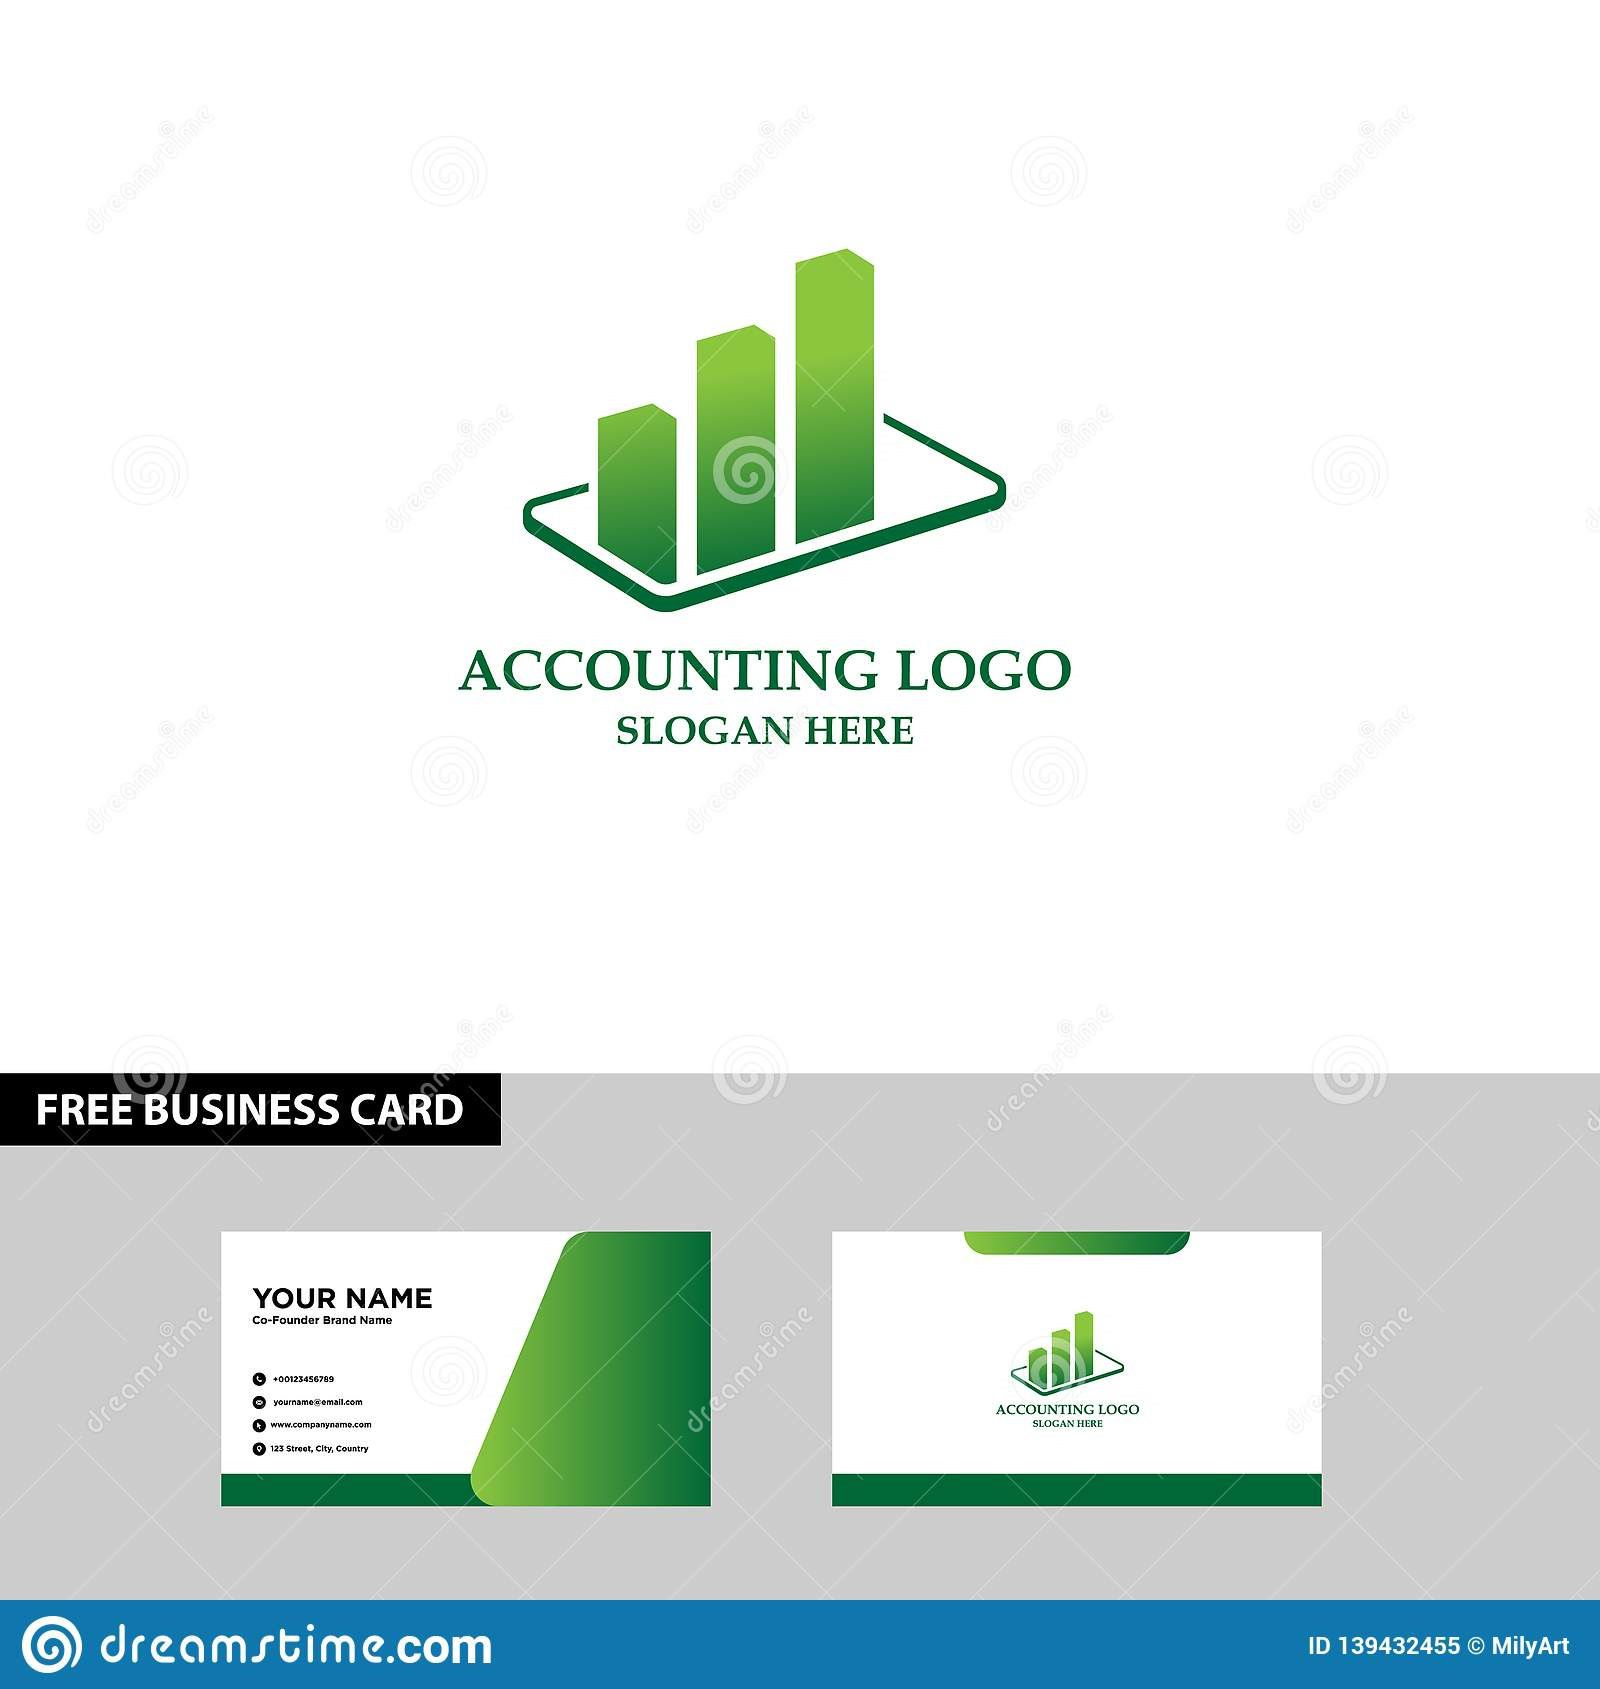 004 Outstanding Free Busines Logo Template Photo  Templates Design Download PowerpointFull